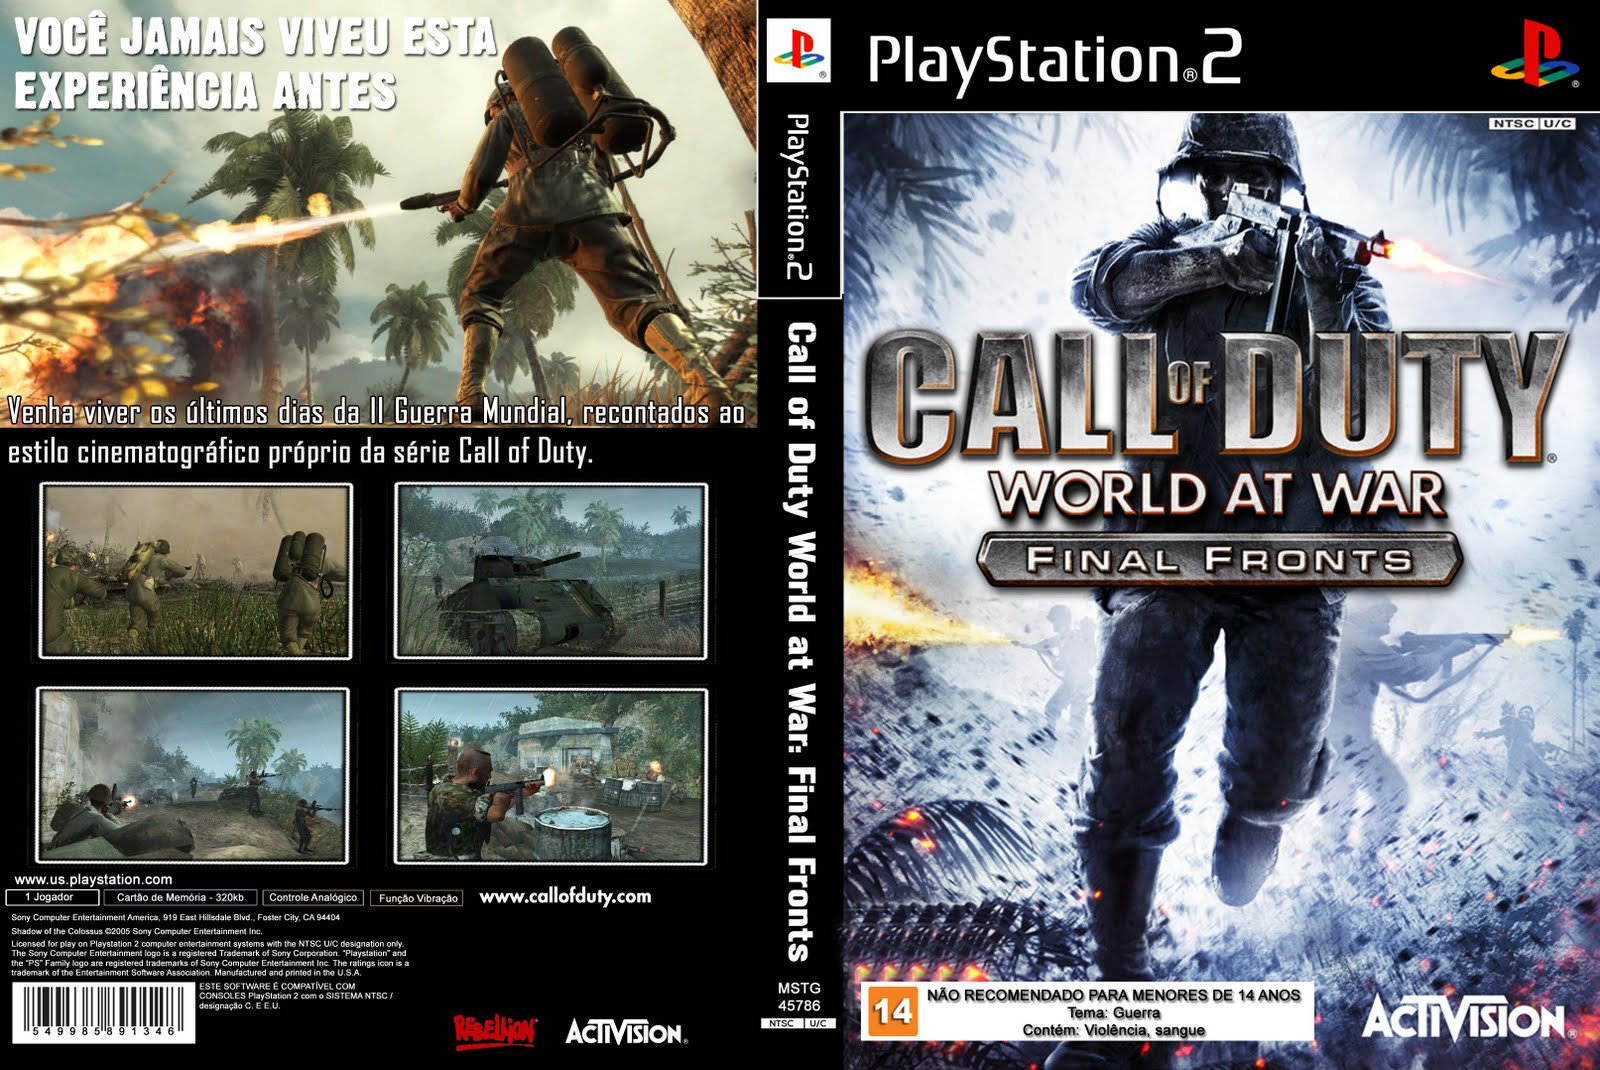 Ps2 call of duty world at war / 30 day workout dvd